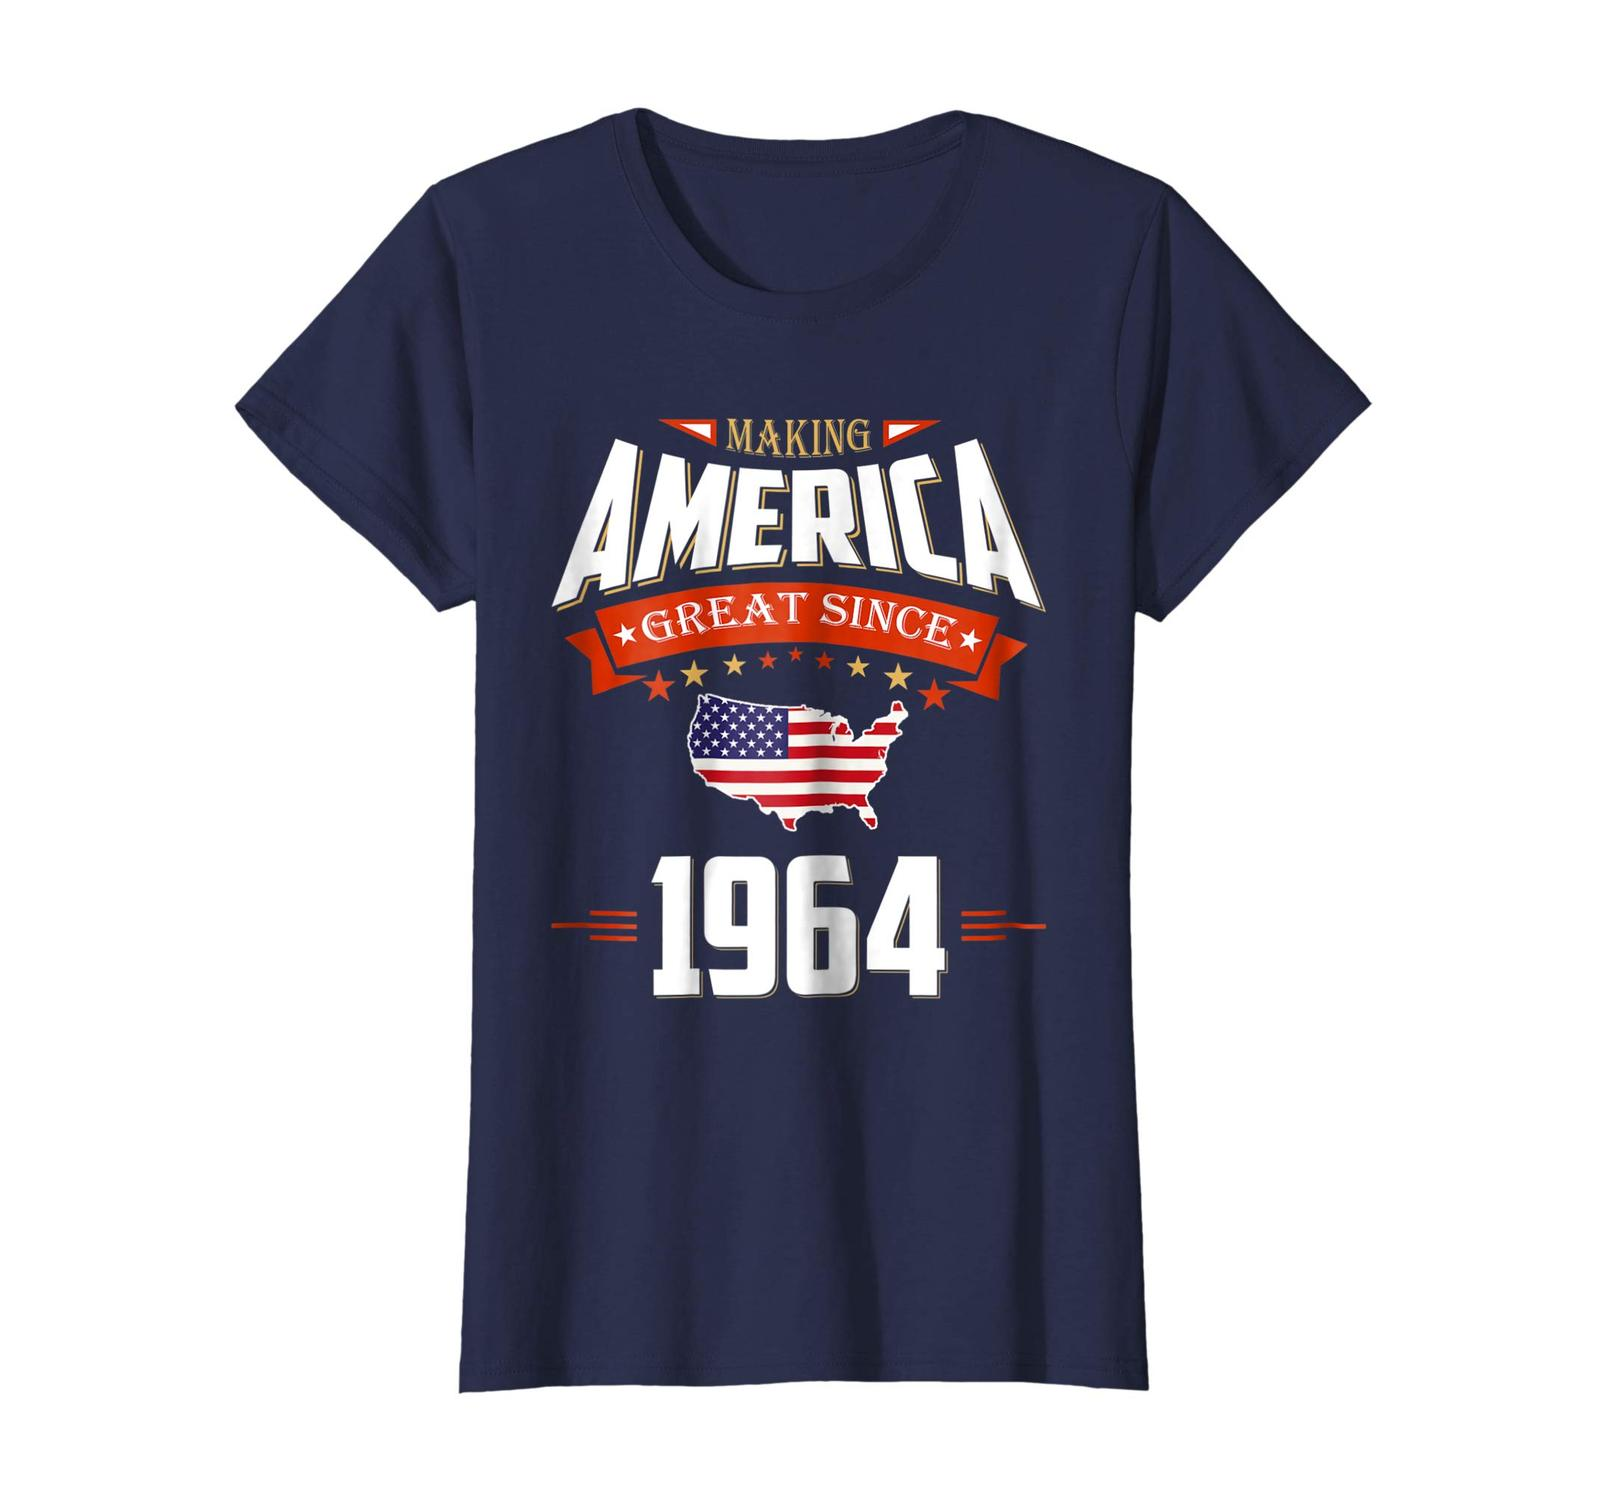 Brother Shirts - 1964 Vintage Funny 54th Birthday Gift Shirt For Him or Her Wowe